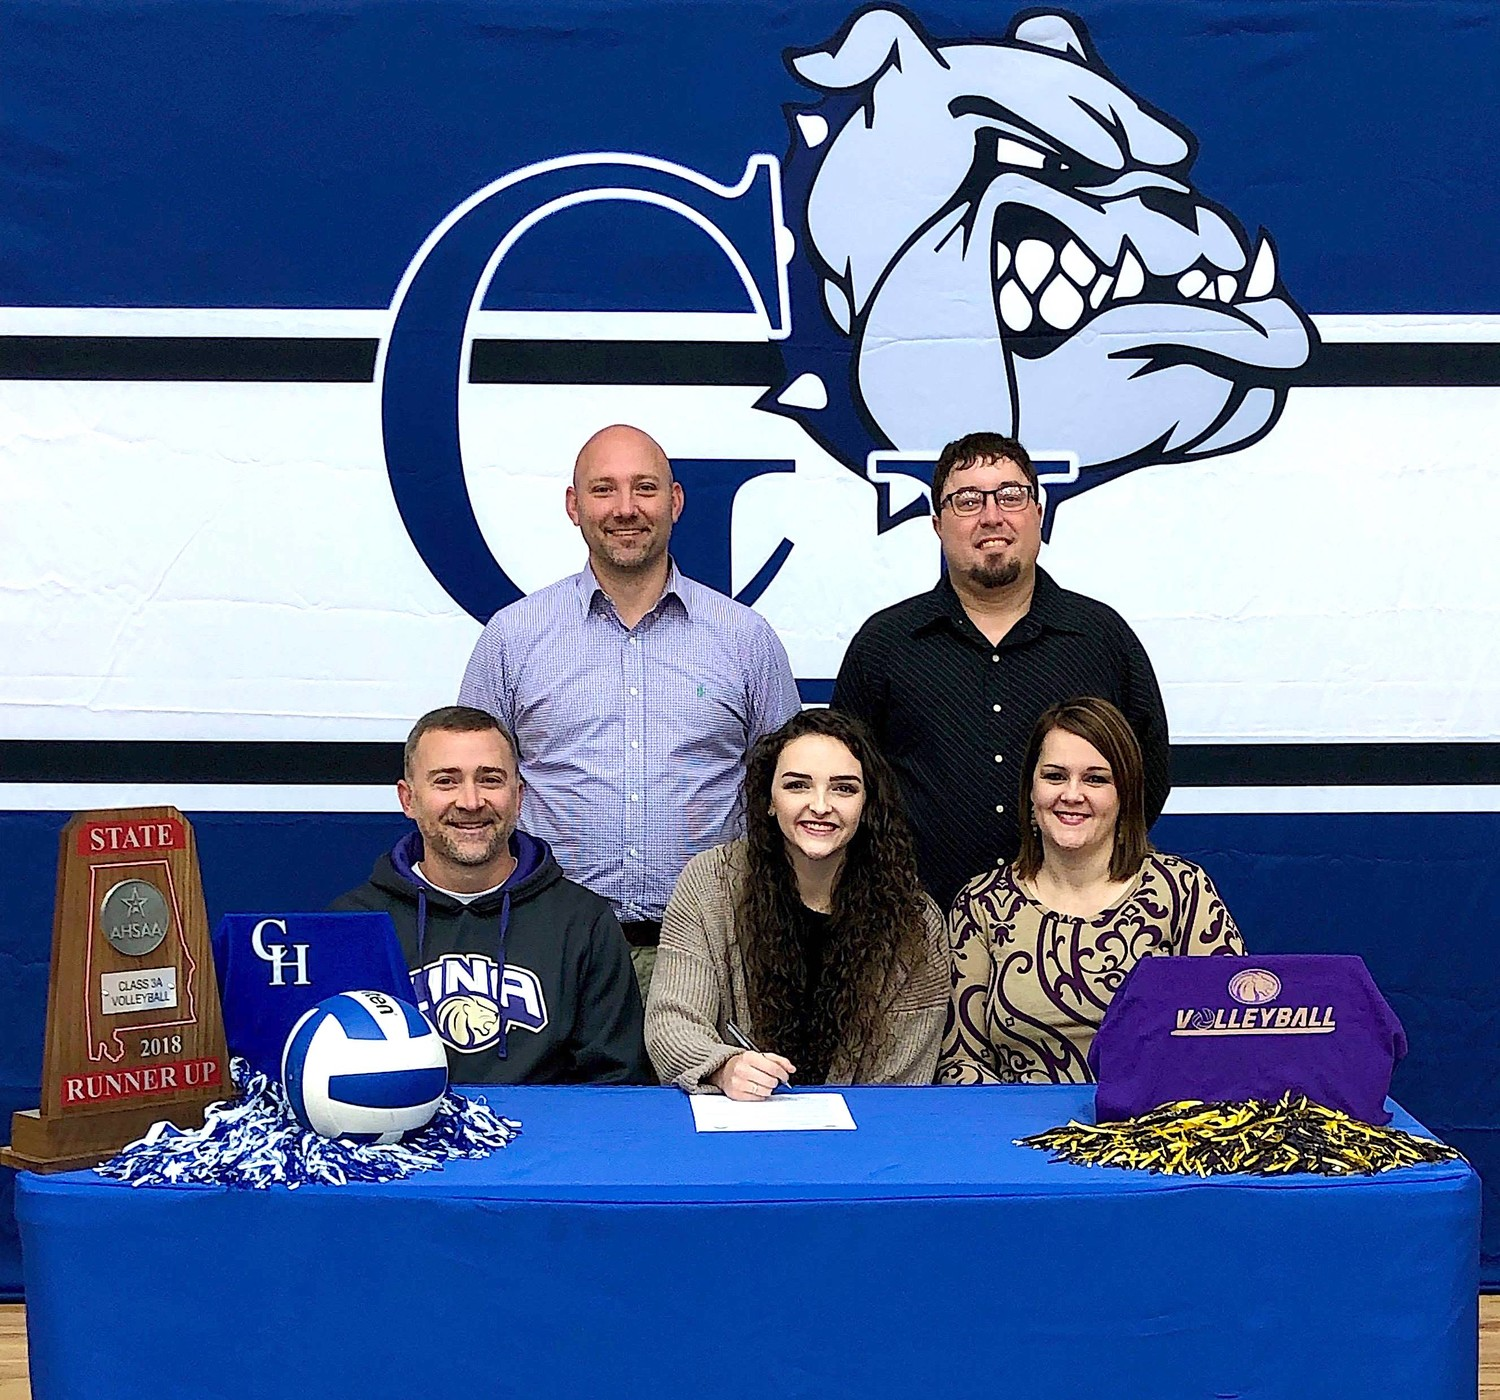 Carbon Hill volleyball player Alyssa Dutton, center, signed a letter of intent with the University of North Alabama earlier this month. She will play for the Lions starting next fall. Present at the signing were, seated from left, Matt Dutton, Alyssa Dutton and Wendy Dutton, back row, Carbon Hill head coach Saige Beaty and assistant coach Brandon Phillips.